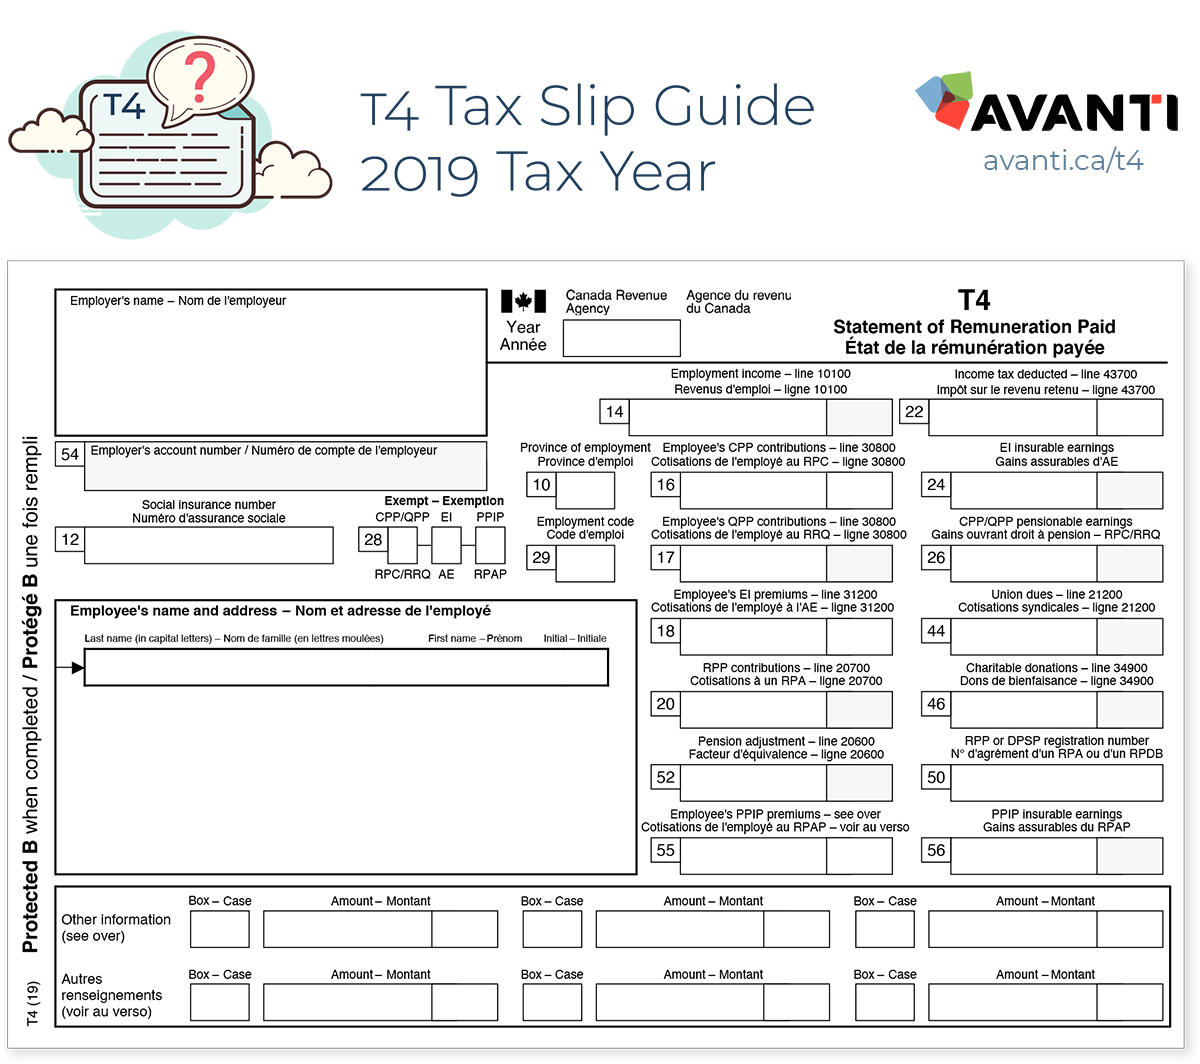 T4 Tax Slip Guide